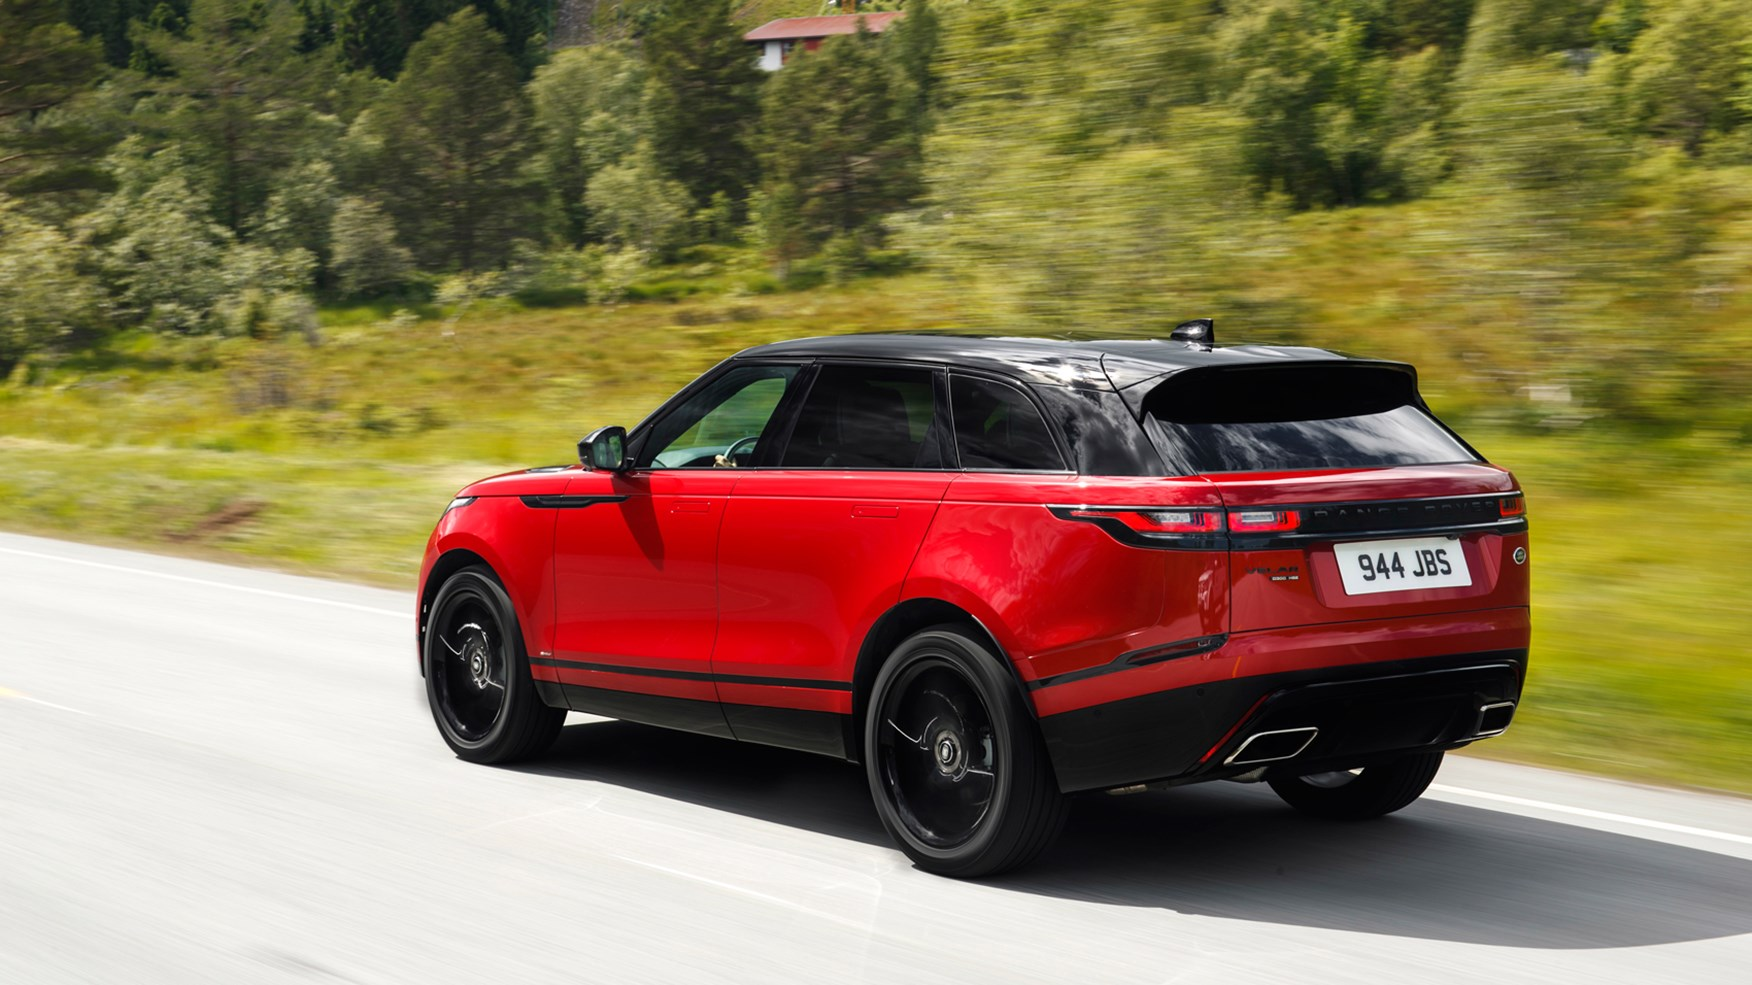 Luxury REVIEW Land Rover Range Rover Velar 2017 Is Certainly A